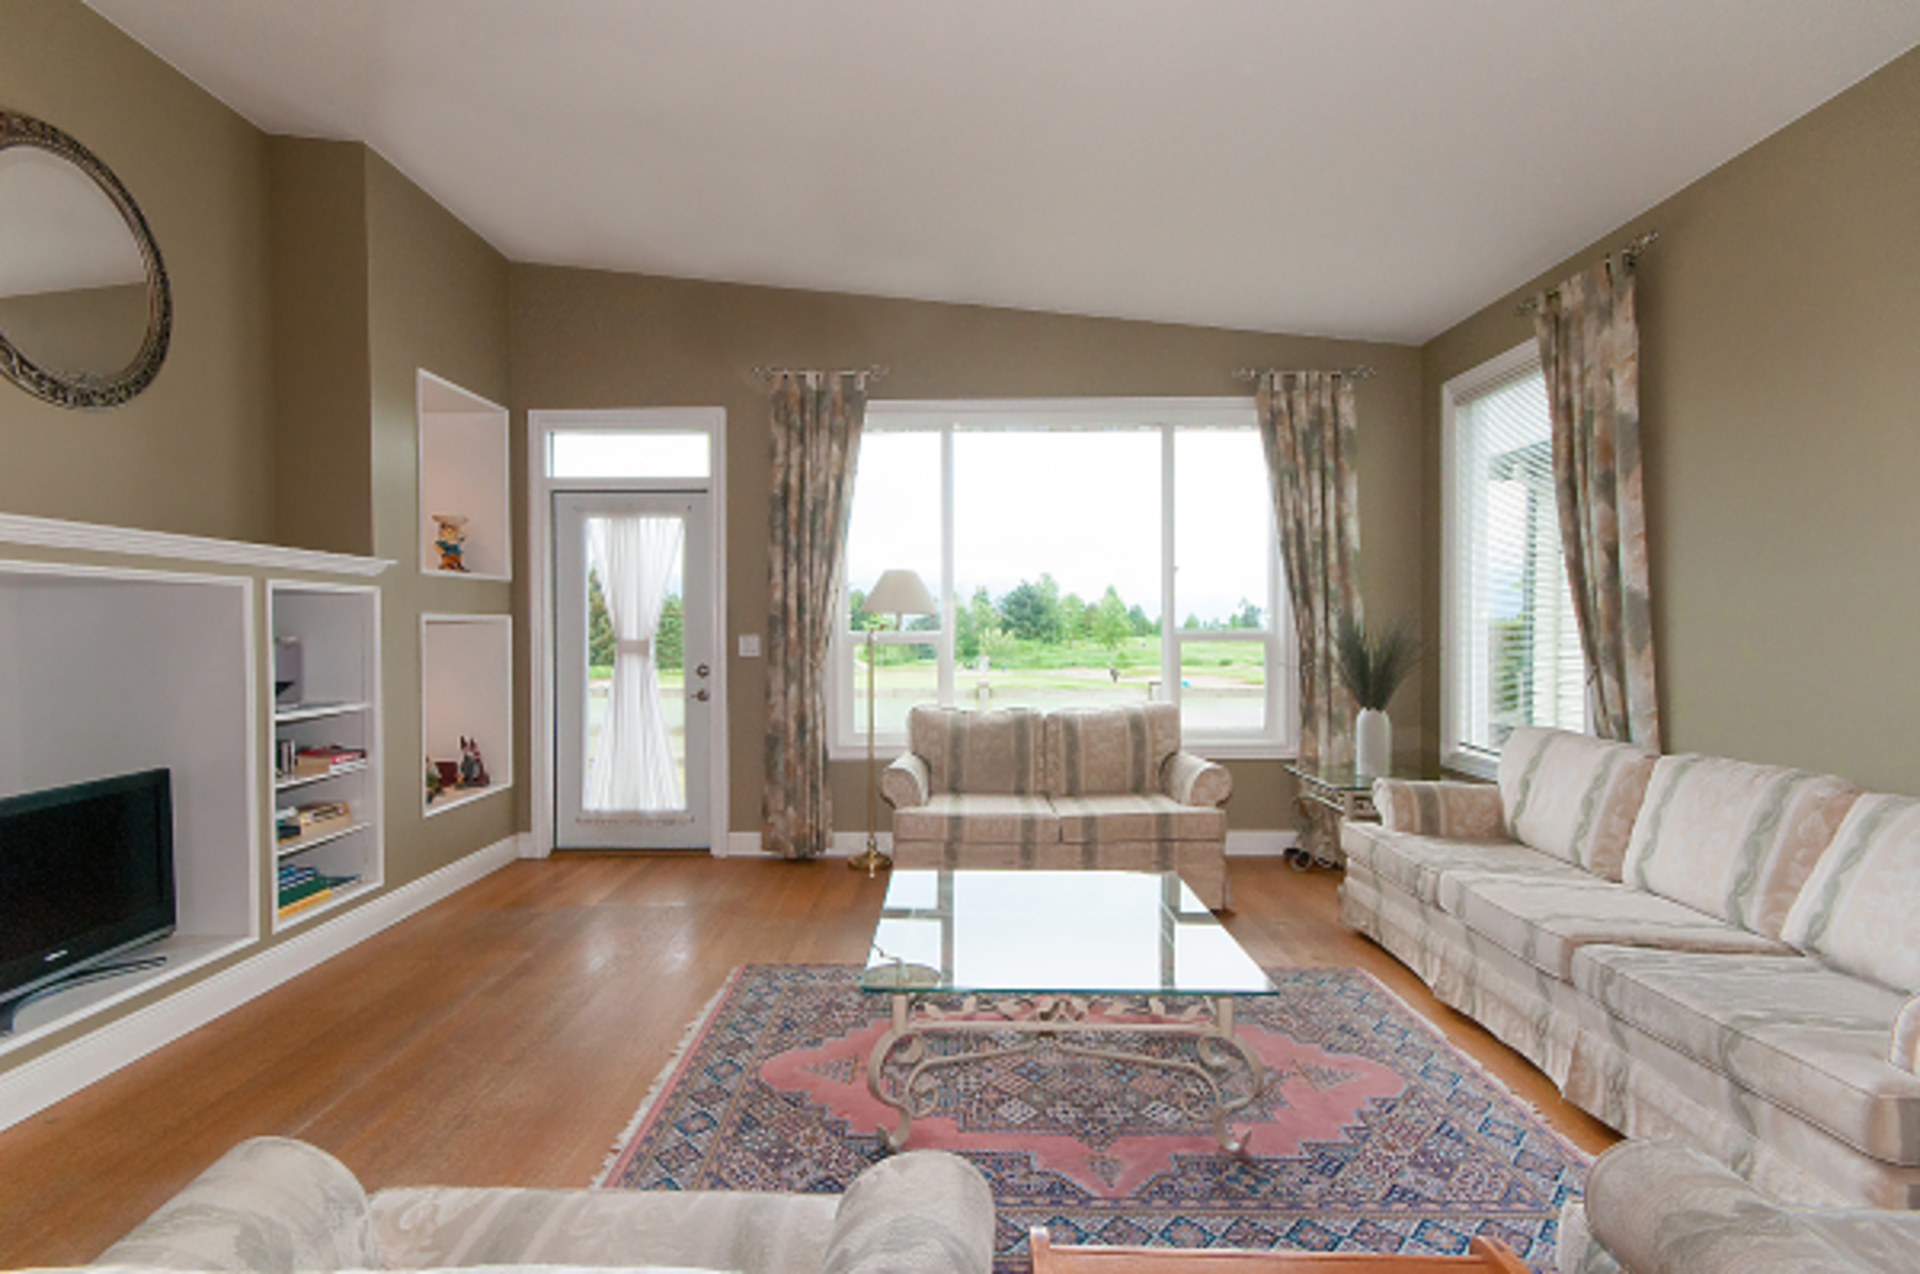 006 at 131 - 19639 Meadow Gardens Way, North Meadows PI, Pitt Meadows